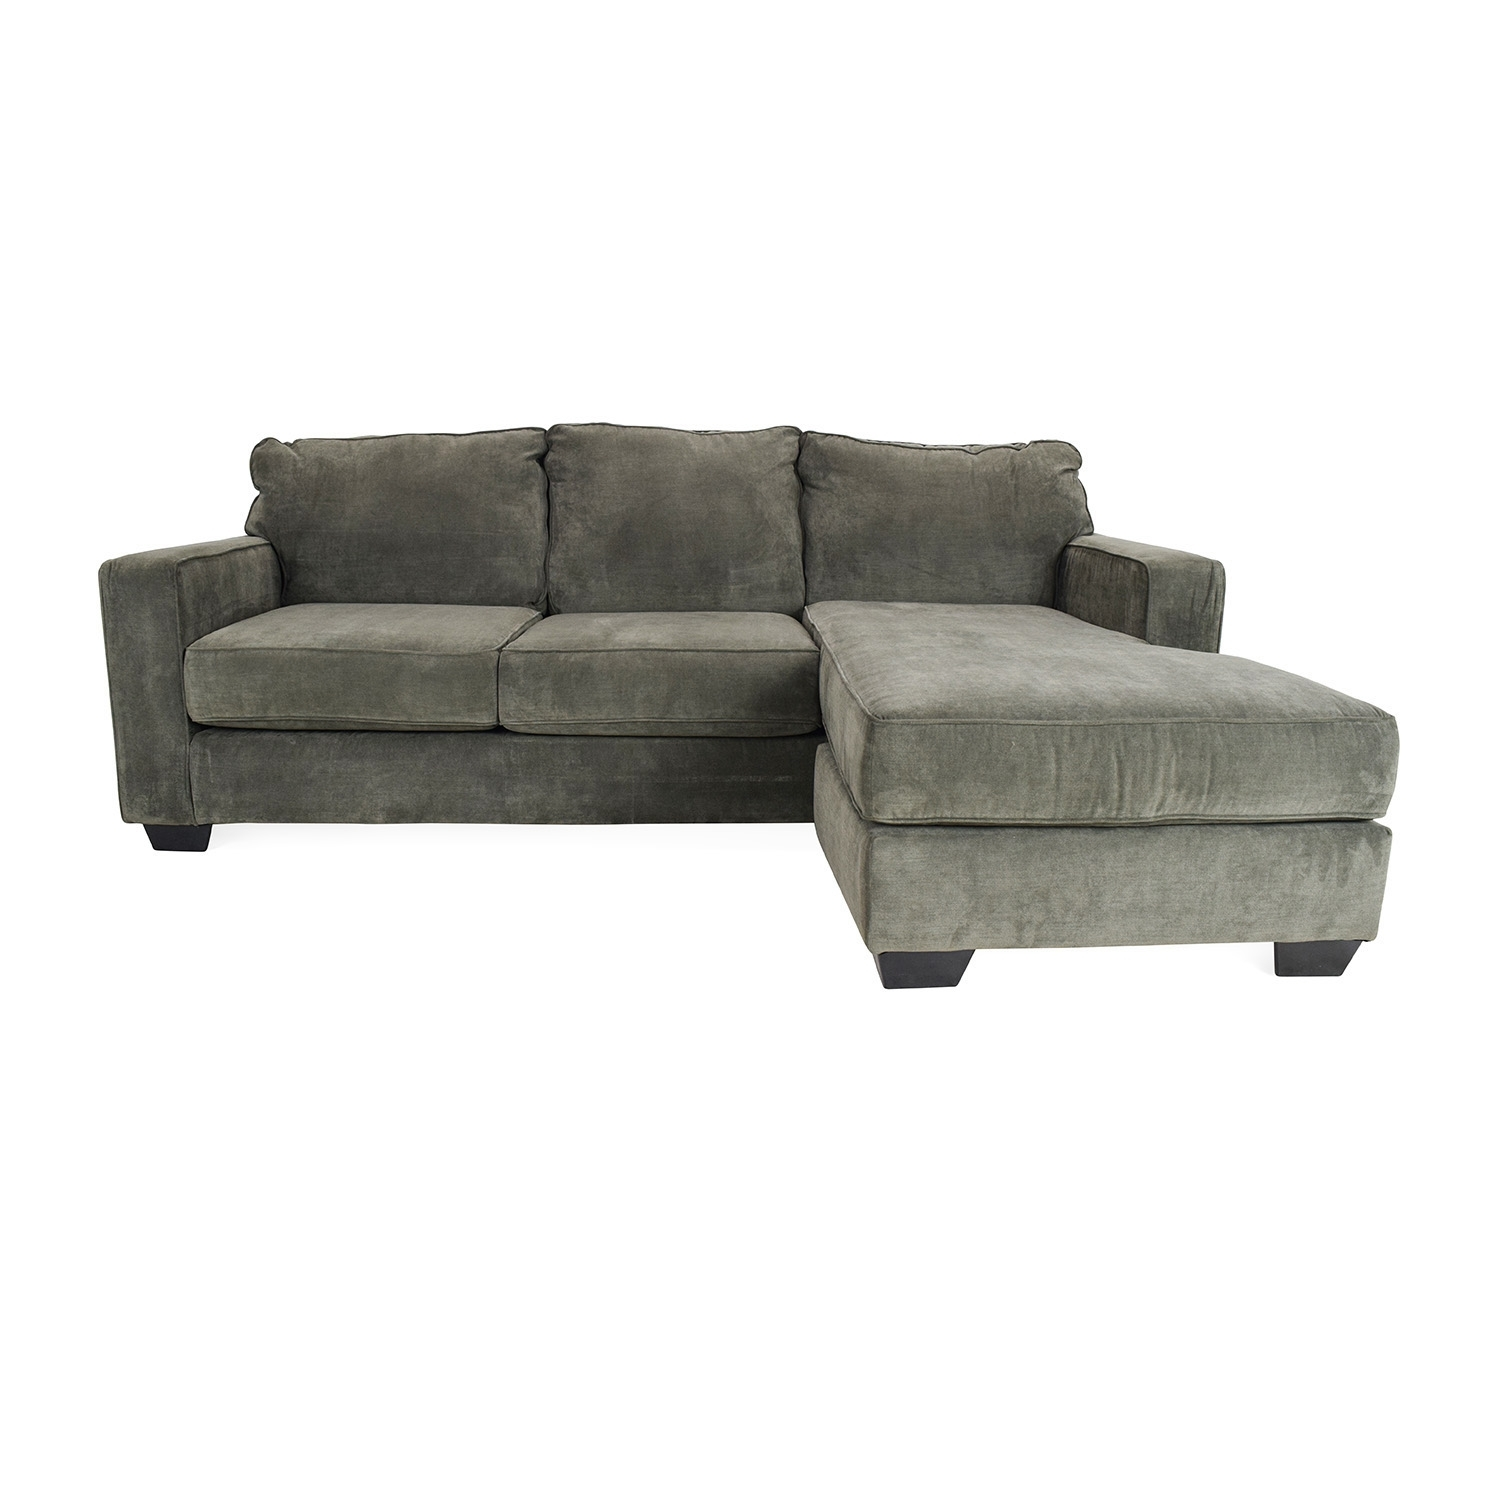 54% Off – Jennifer Convertibles Jennifer Convertibles Sectional Sofa Throughout Jennifer Convertibles Sectional Sofas (Image 1 of 10)